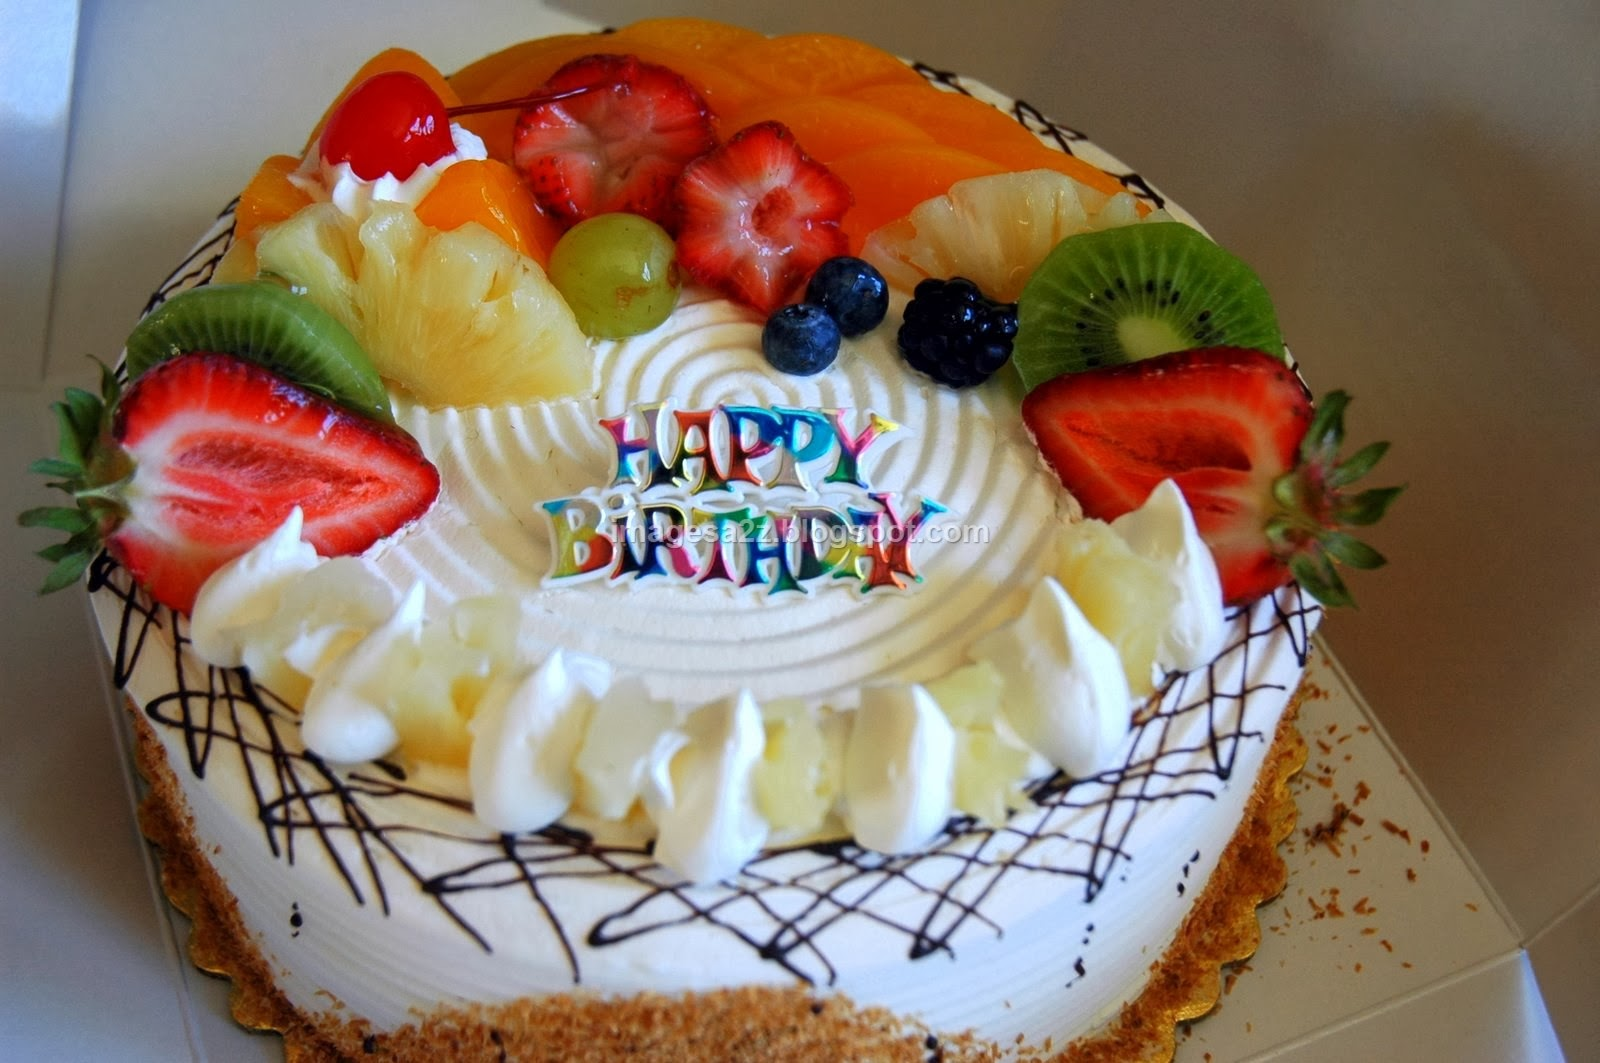 Images Of Birthday Cakes With Wishes For Friends : attractive birthday wishes for friends cake birthday ...